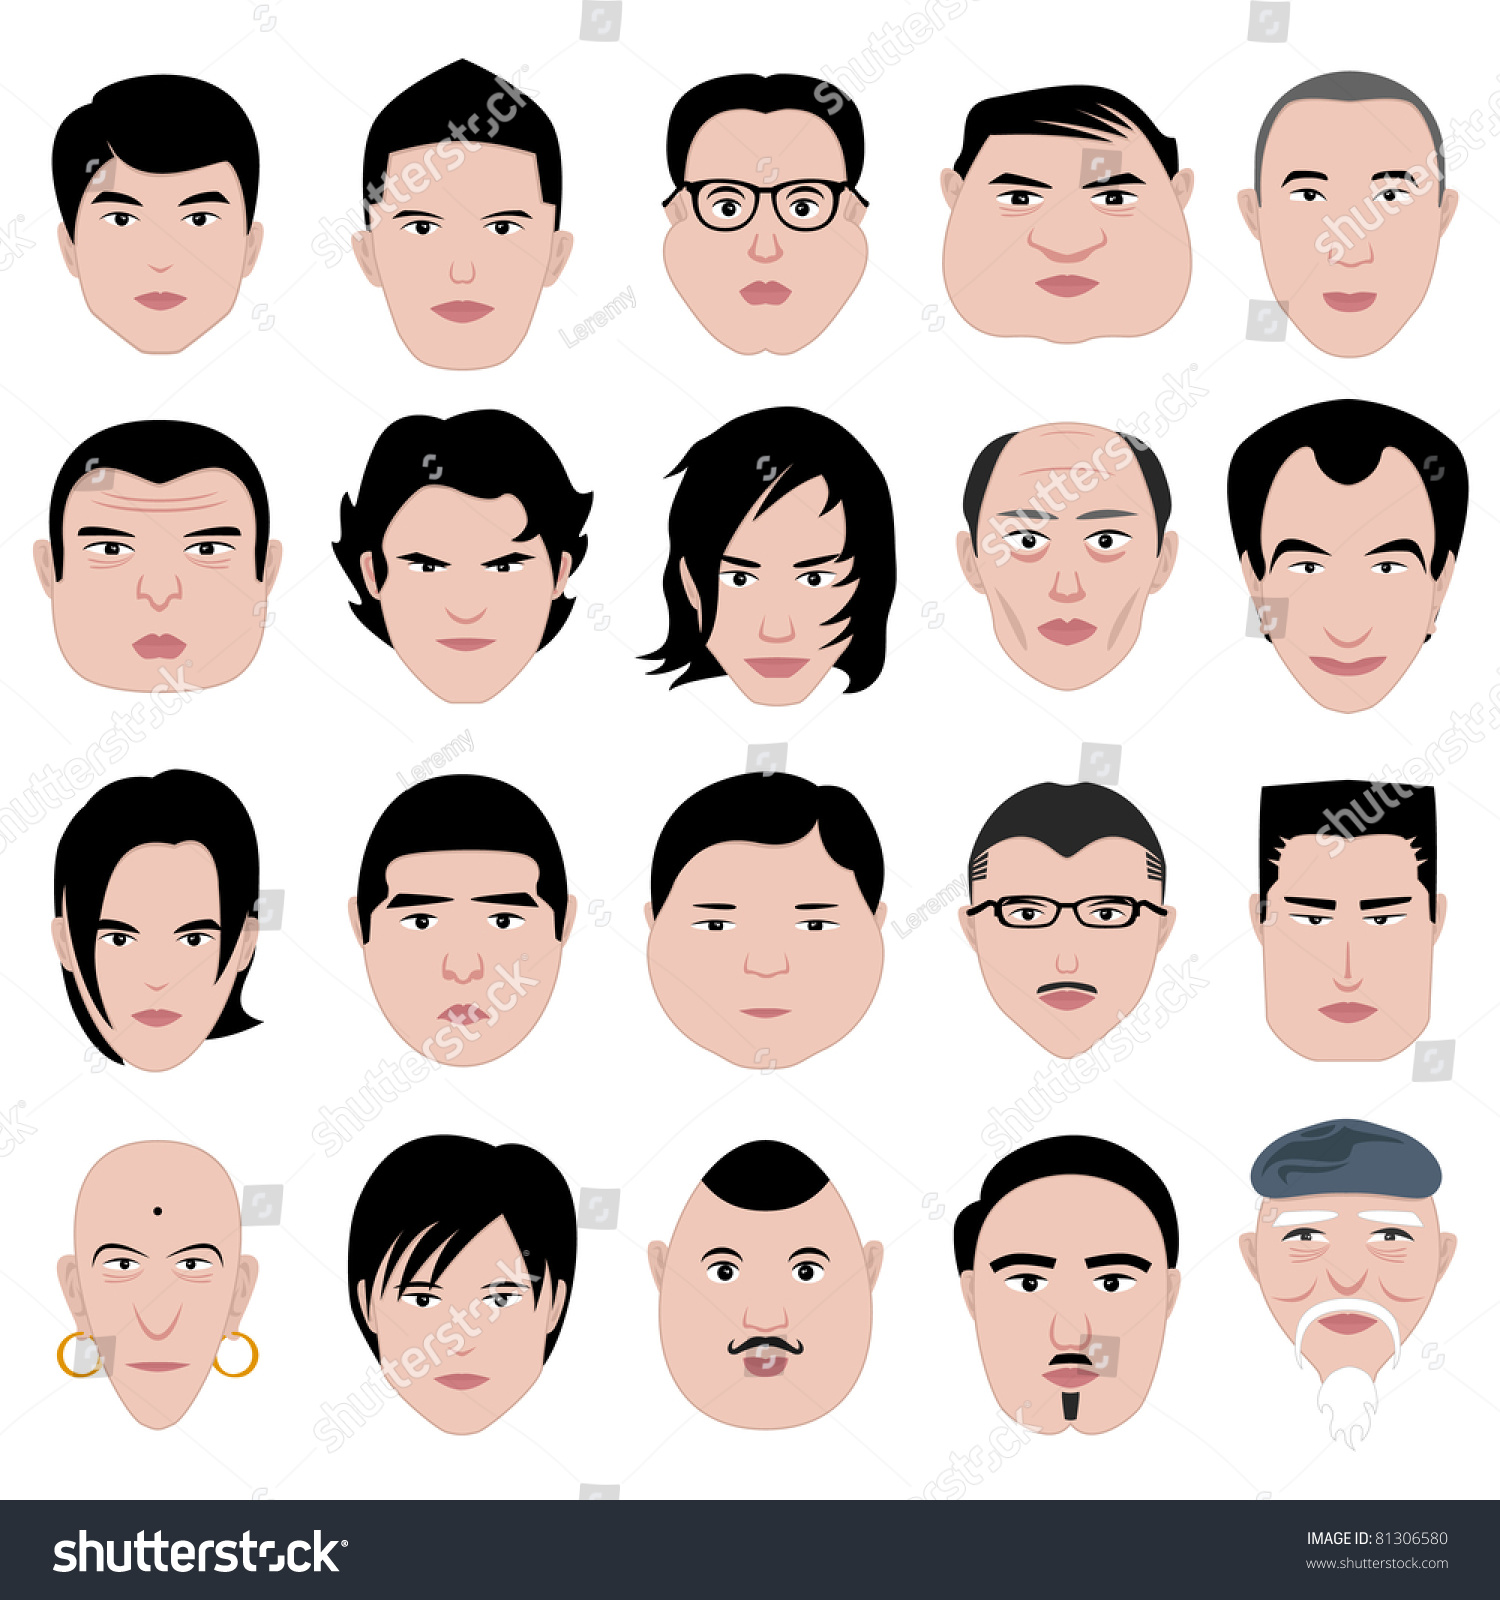 Man Face Shape Hairstyle Round Fat Stock Illustration 81306580 ...